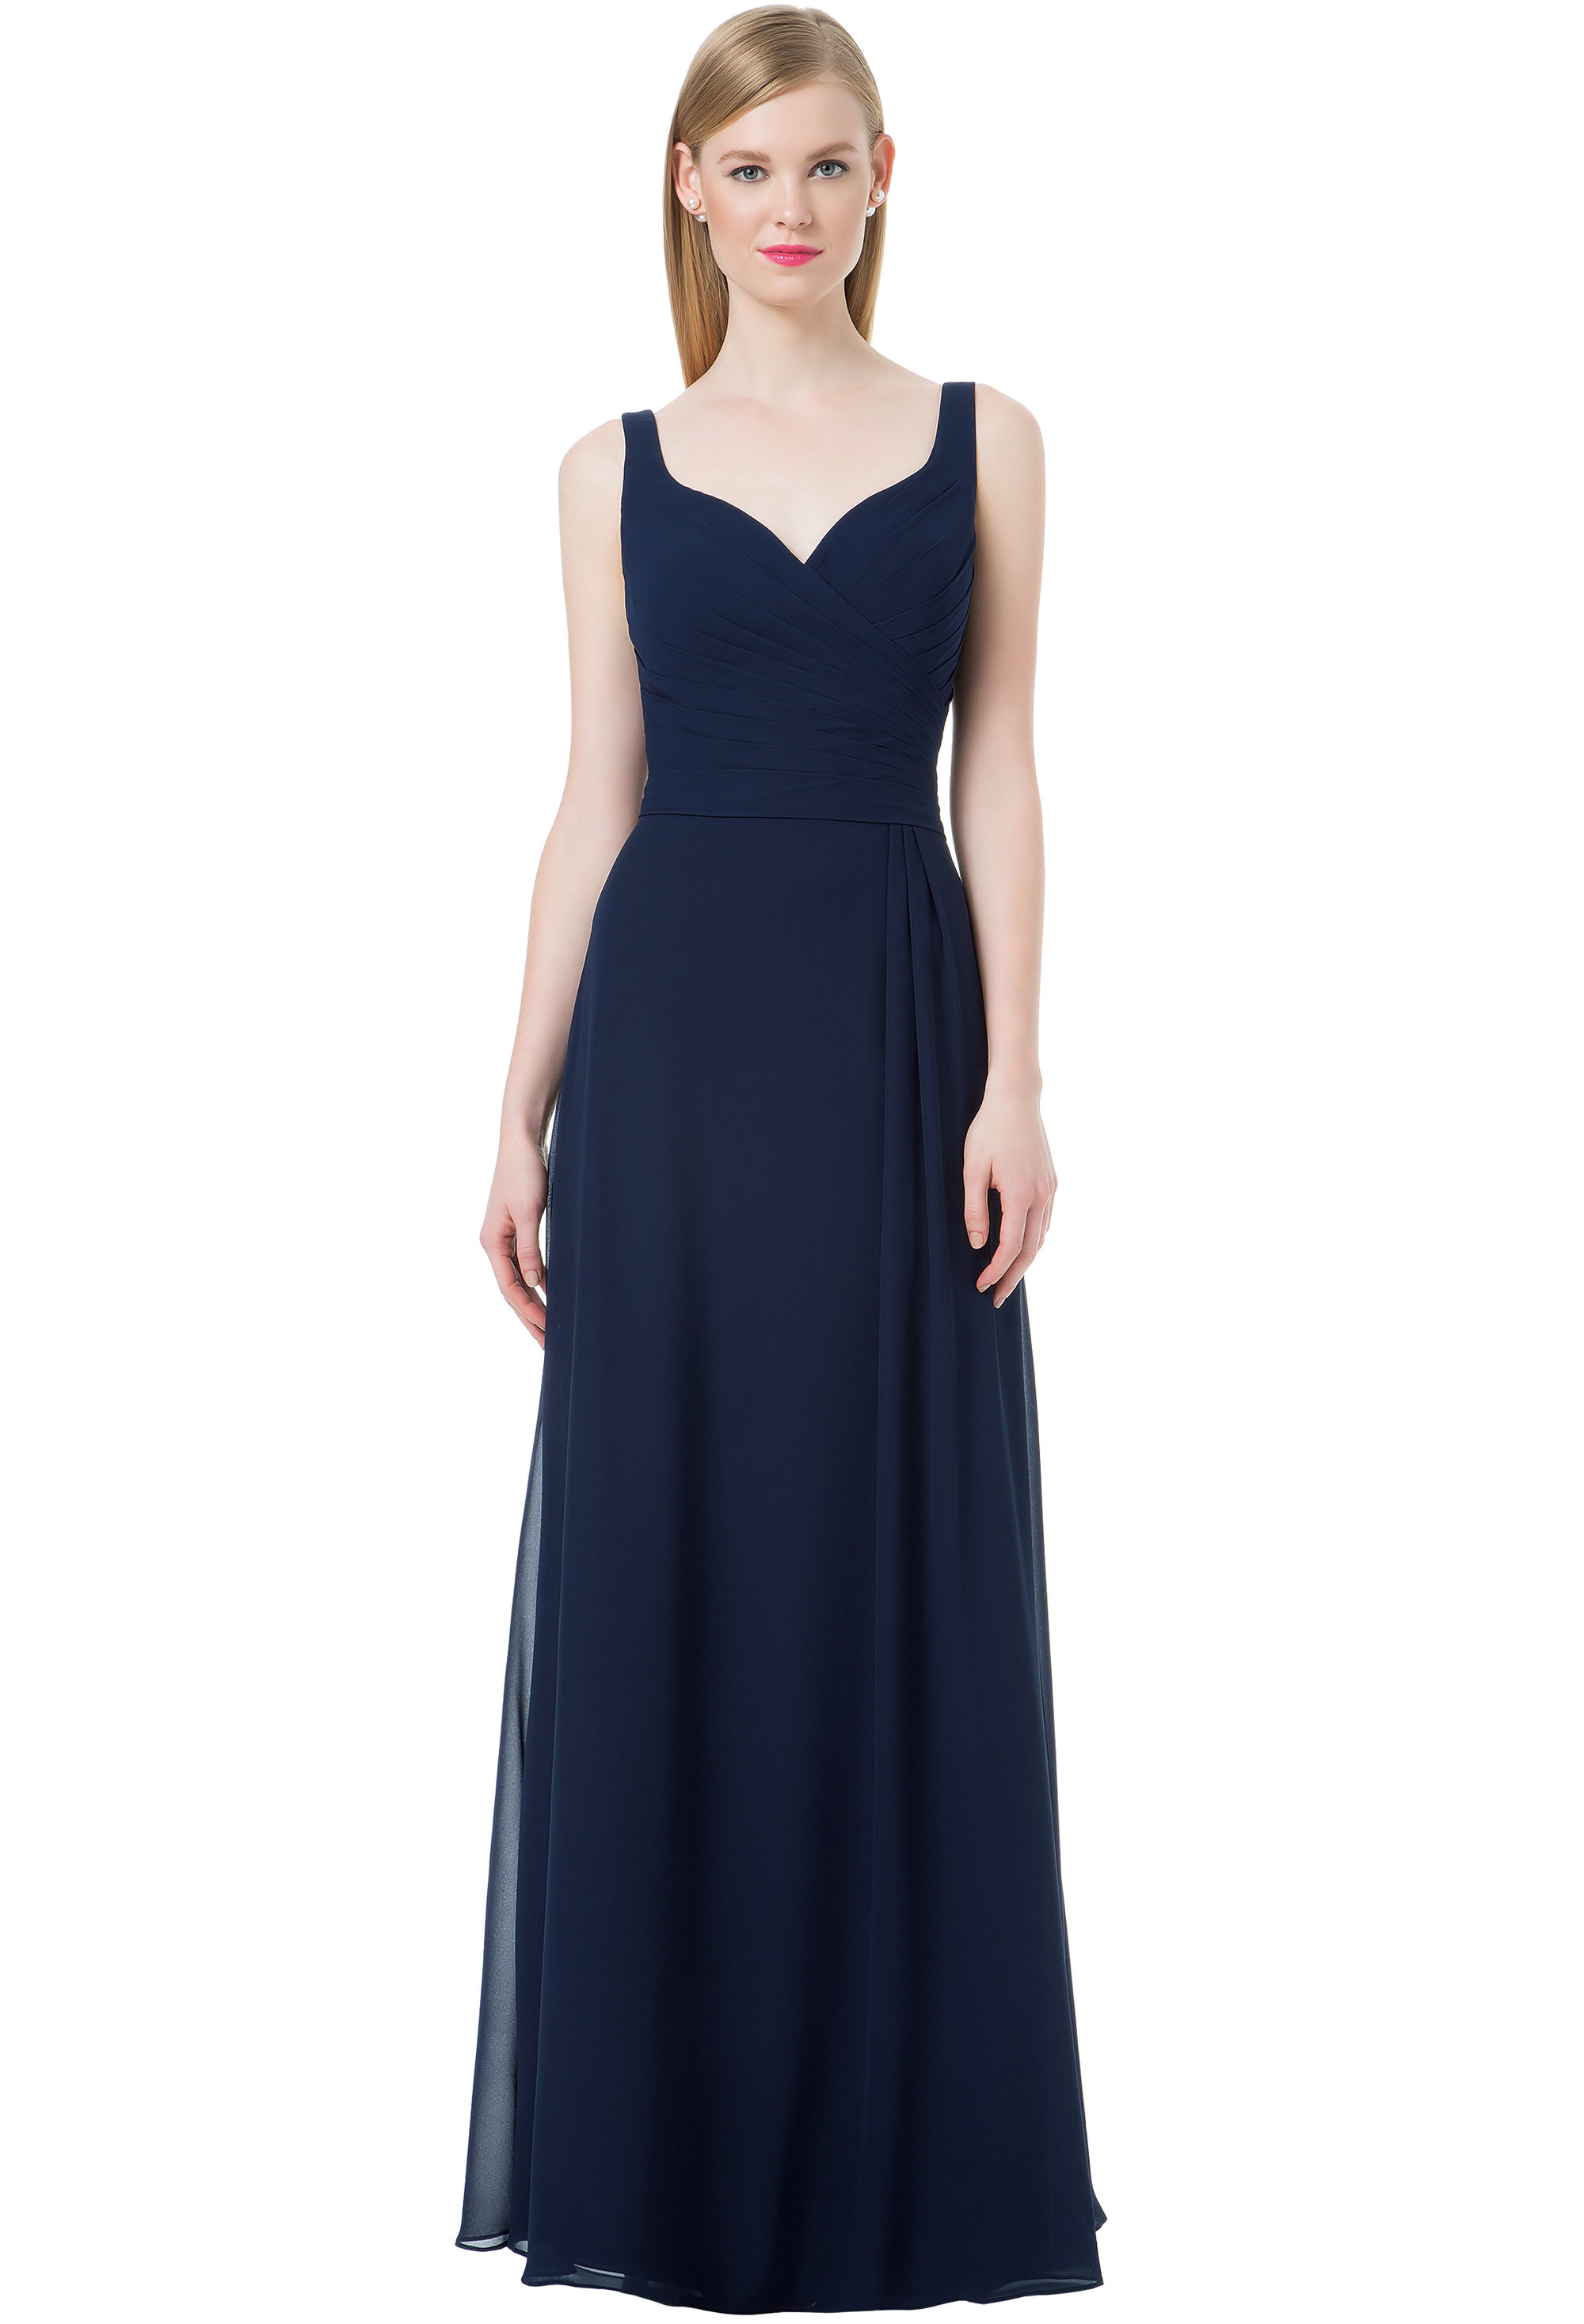 Bill Levkoff NAVY Chiffon Sweetheart A-line gown, $220.00 Front